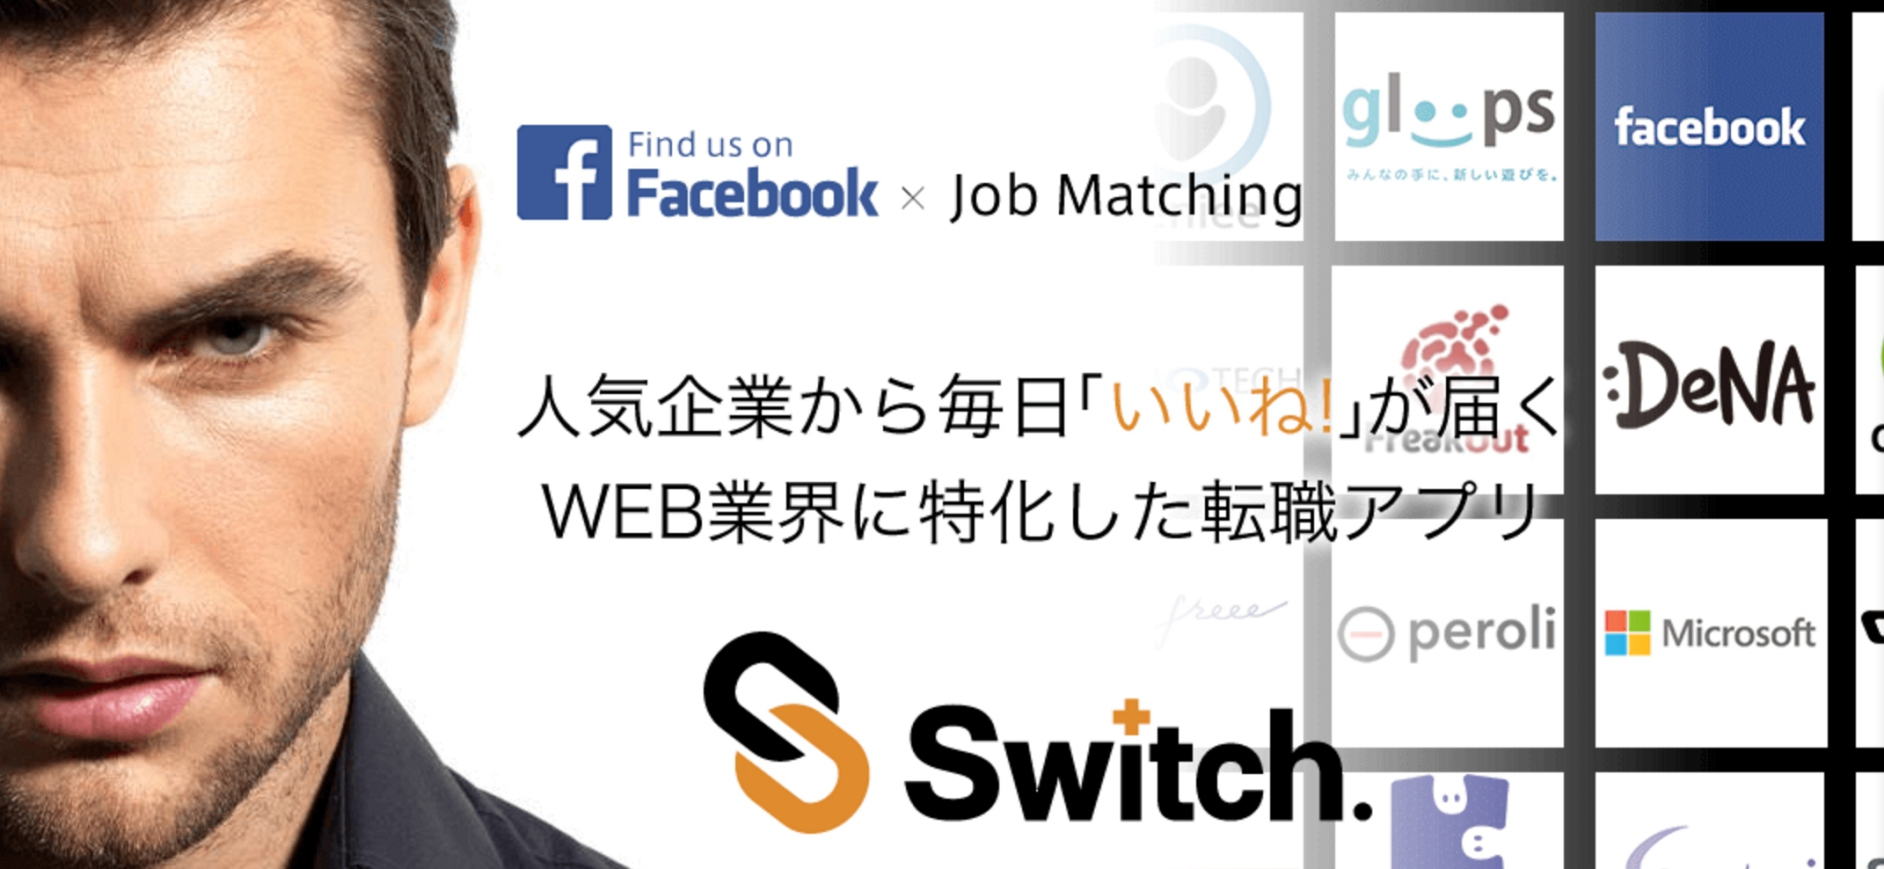 Facebookで登録可能!転職サイトSwitch.